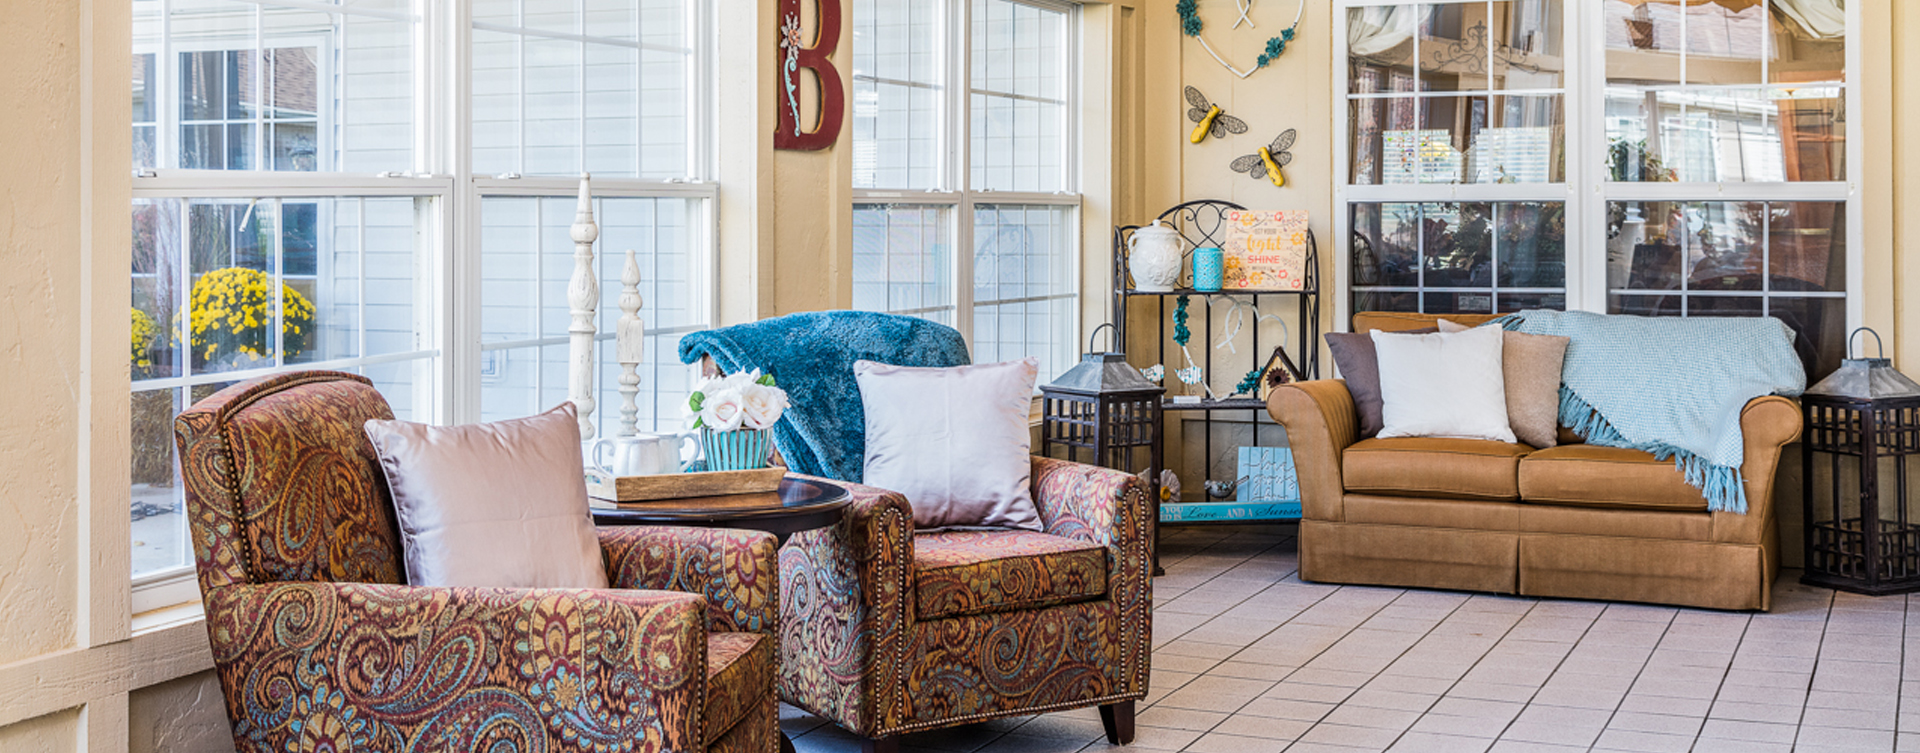 Relax in the warmth of the sunroom at Bickford of Fort Dodge